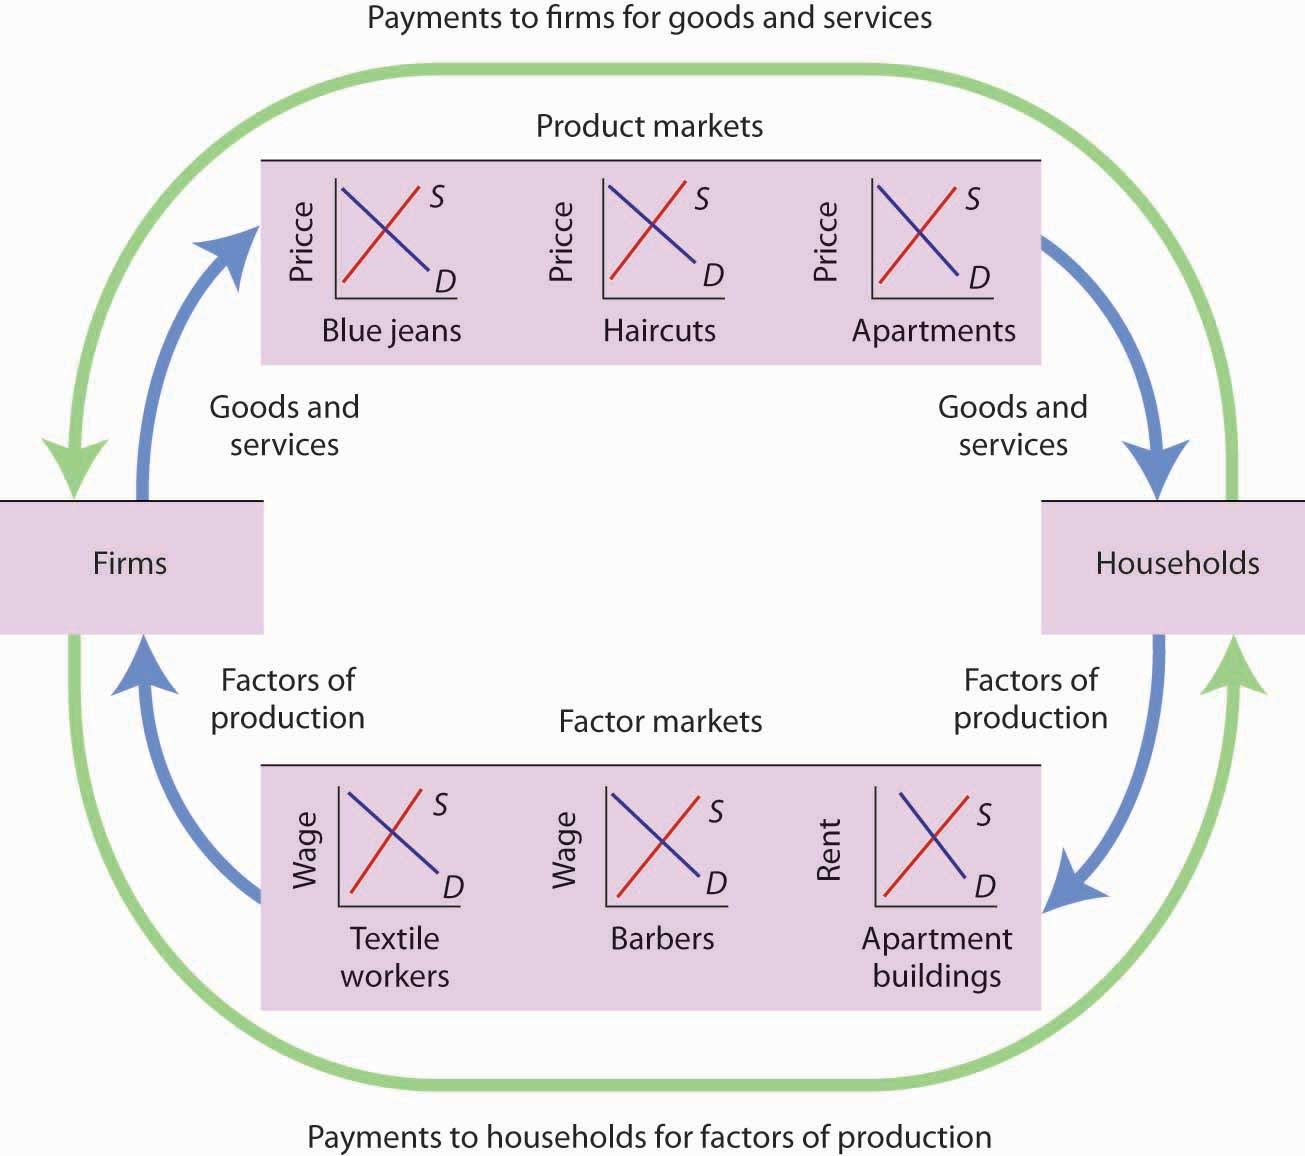 1 1 explain the economic interaction of resources among households government and business Macroecon midterm #1 c role of unions and government in the economy d interaction among a businesses buy resources from the government, and households.